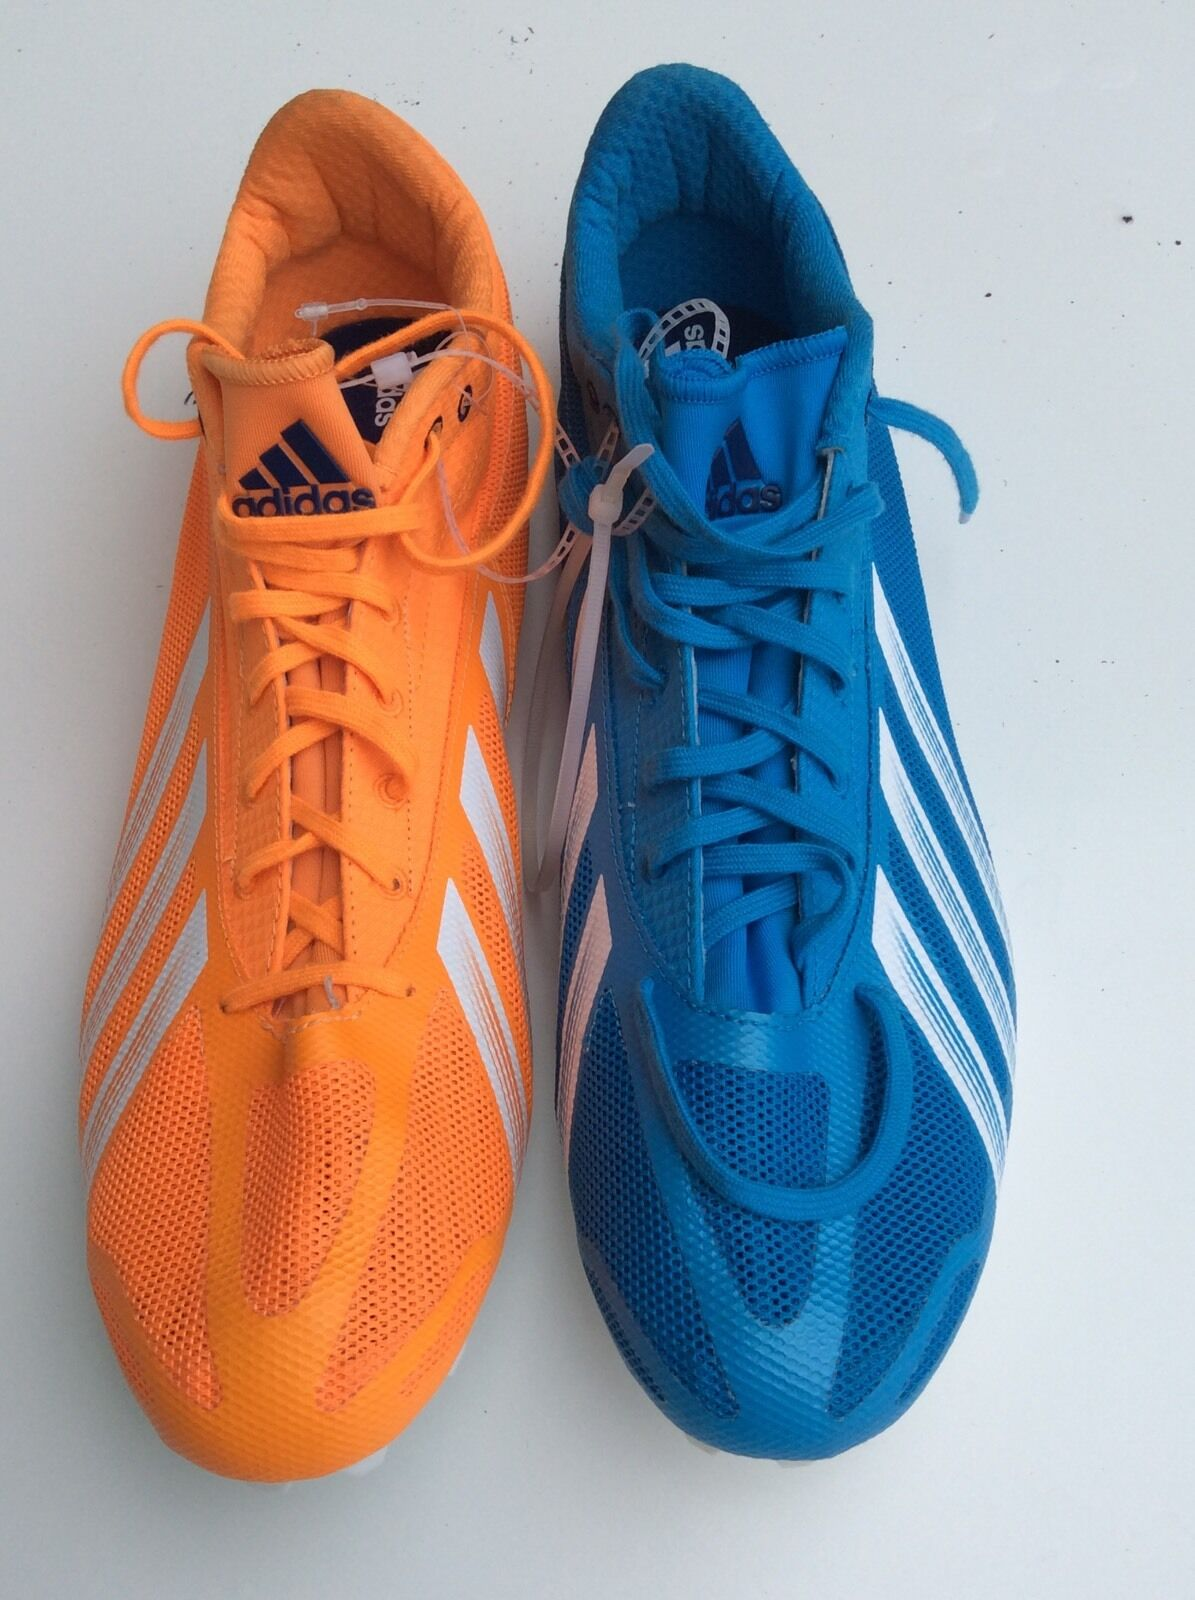 ADIDAS SPRINT STAR IV Track & Field Shoes NEW n w/Spikes & tool The latest discount shoes for men and women